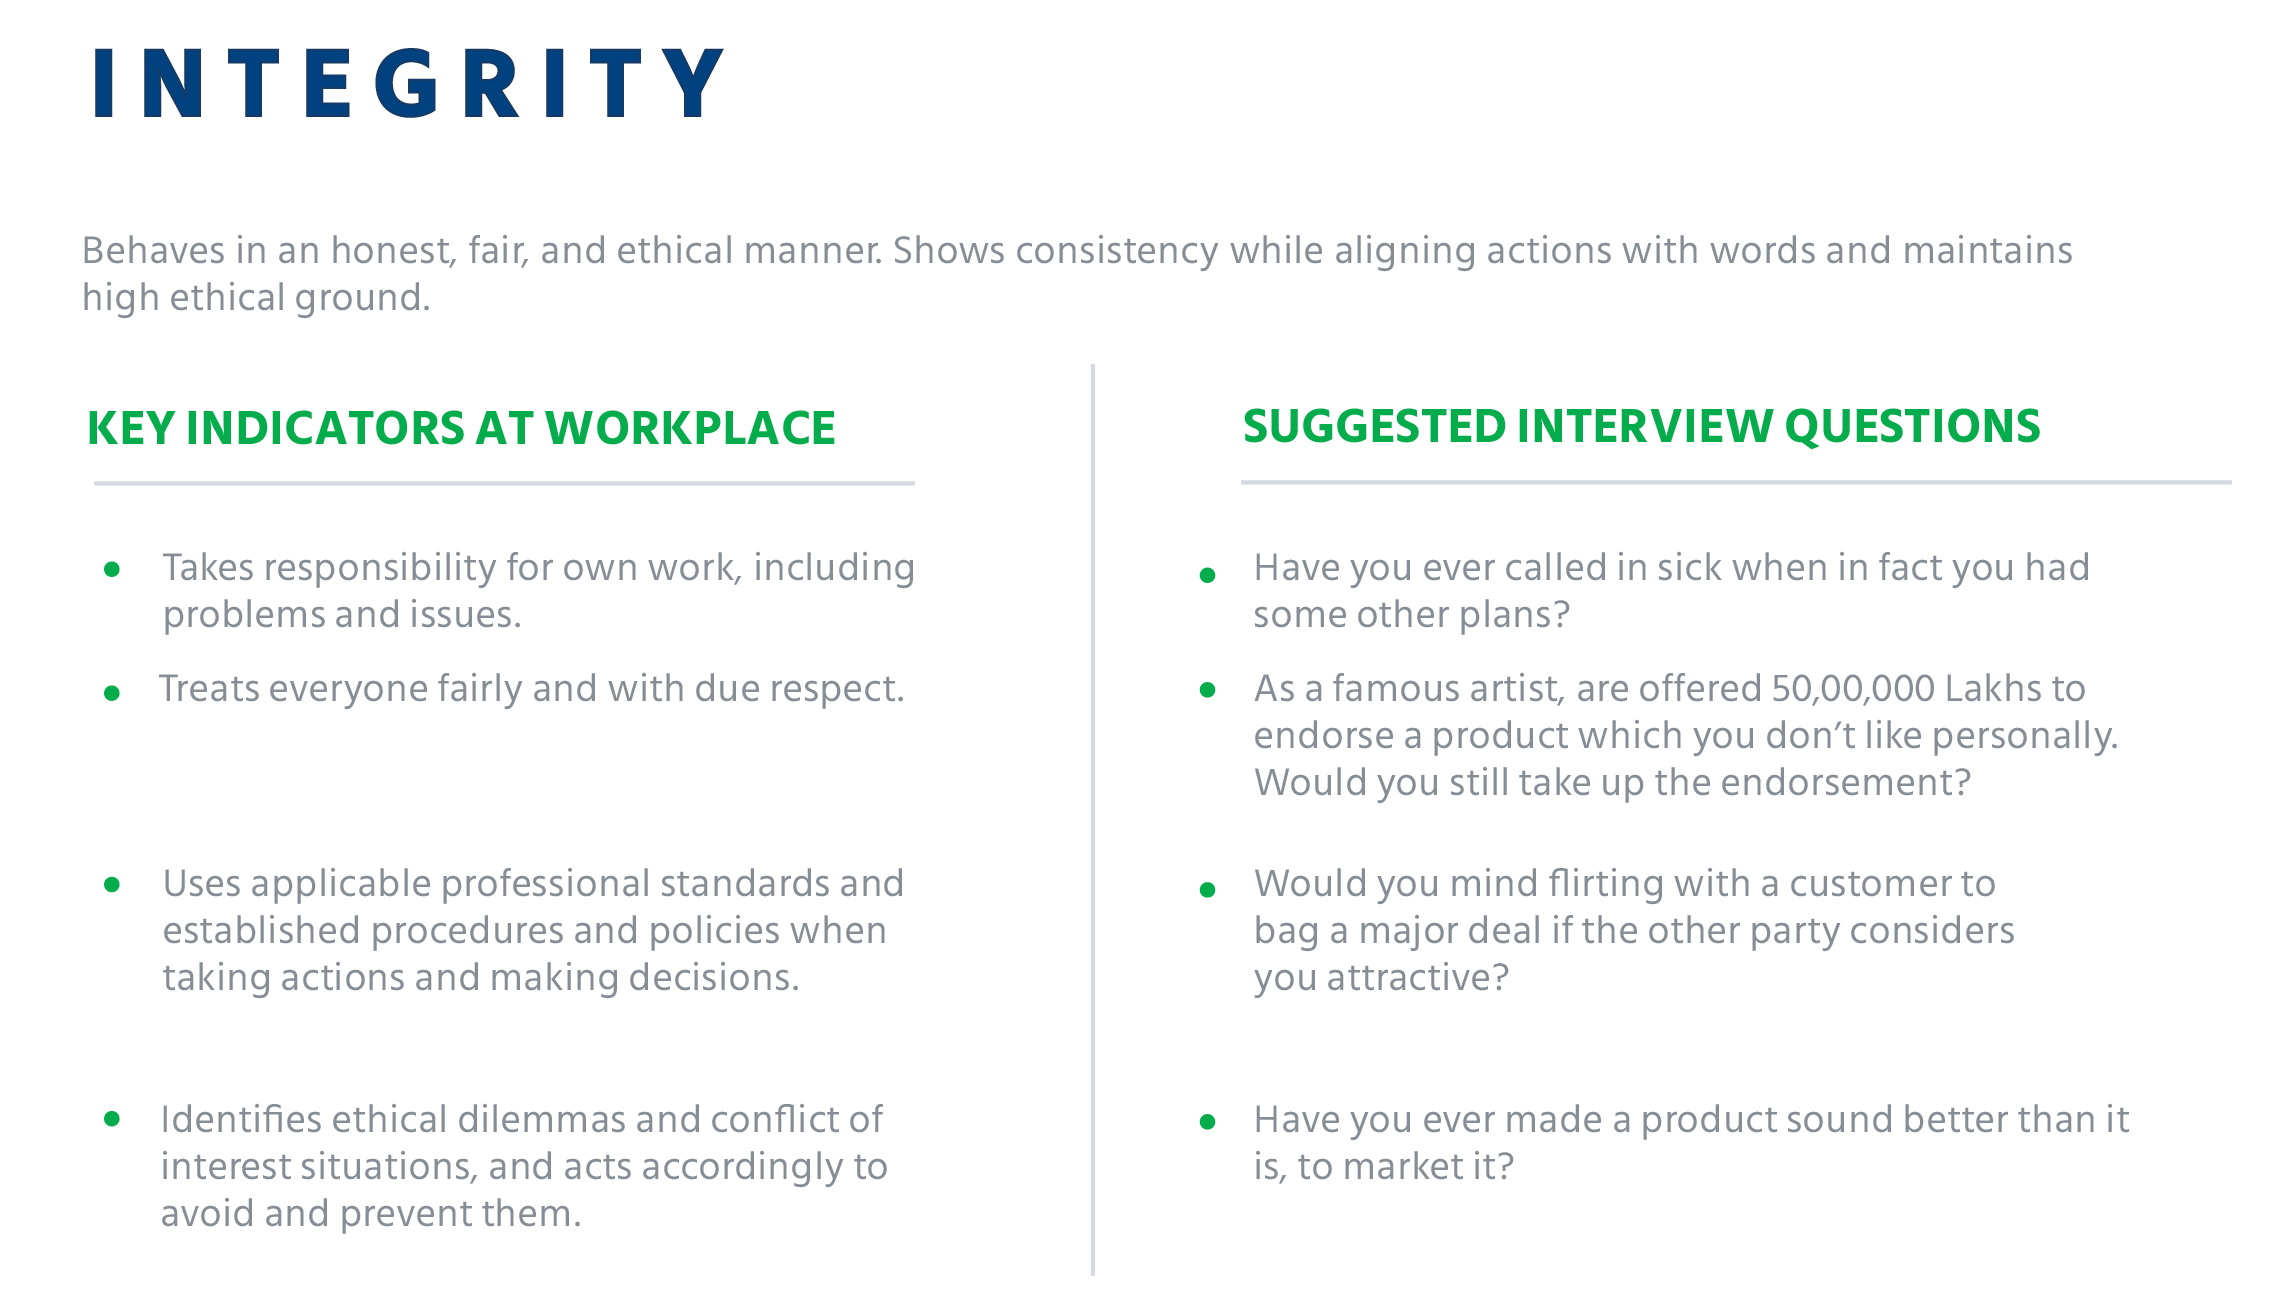 interview questions to identify integrity at workplace